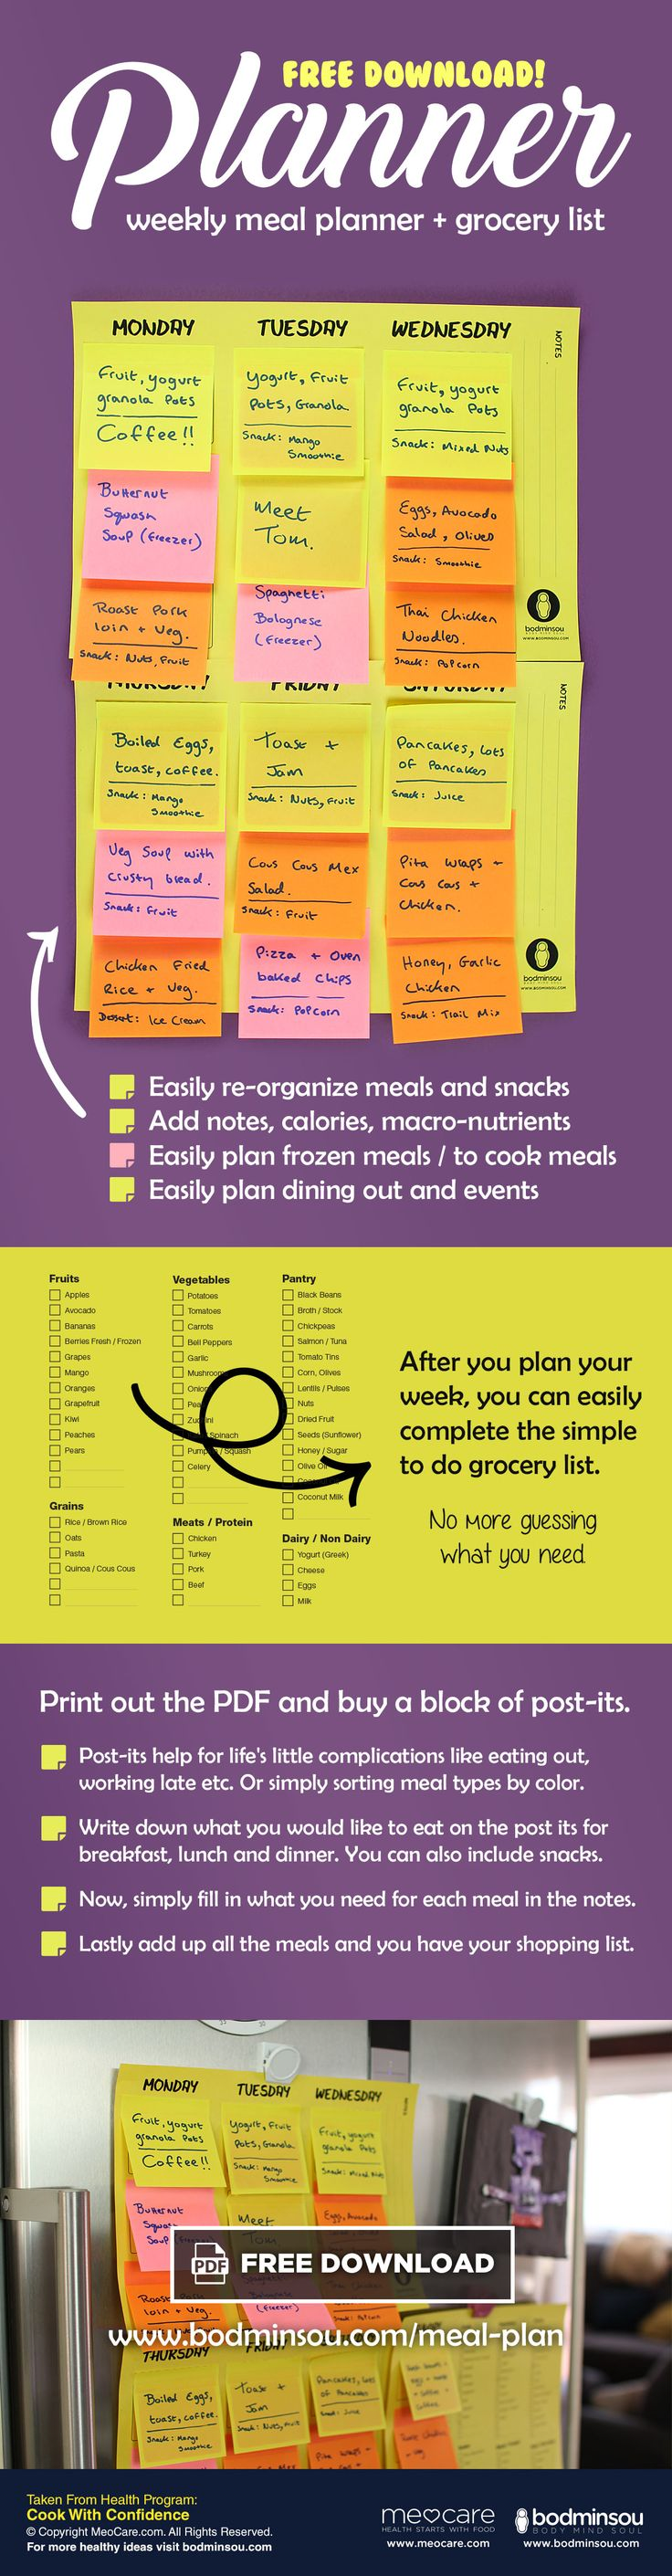 Planning what you will eat for the week ahead is a great way to save time and money. Making a meal plan can be complicated, which is why we designed a simple meal planner for beginners. Download our free meal plan to get started.